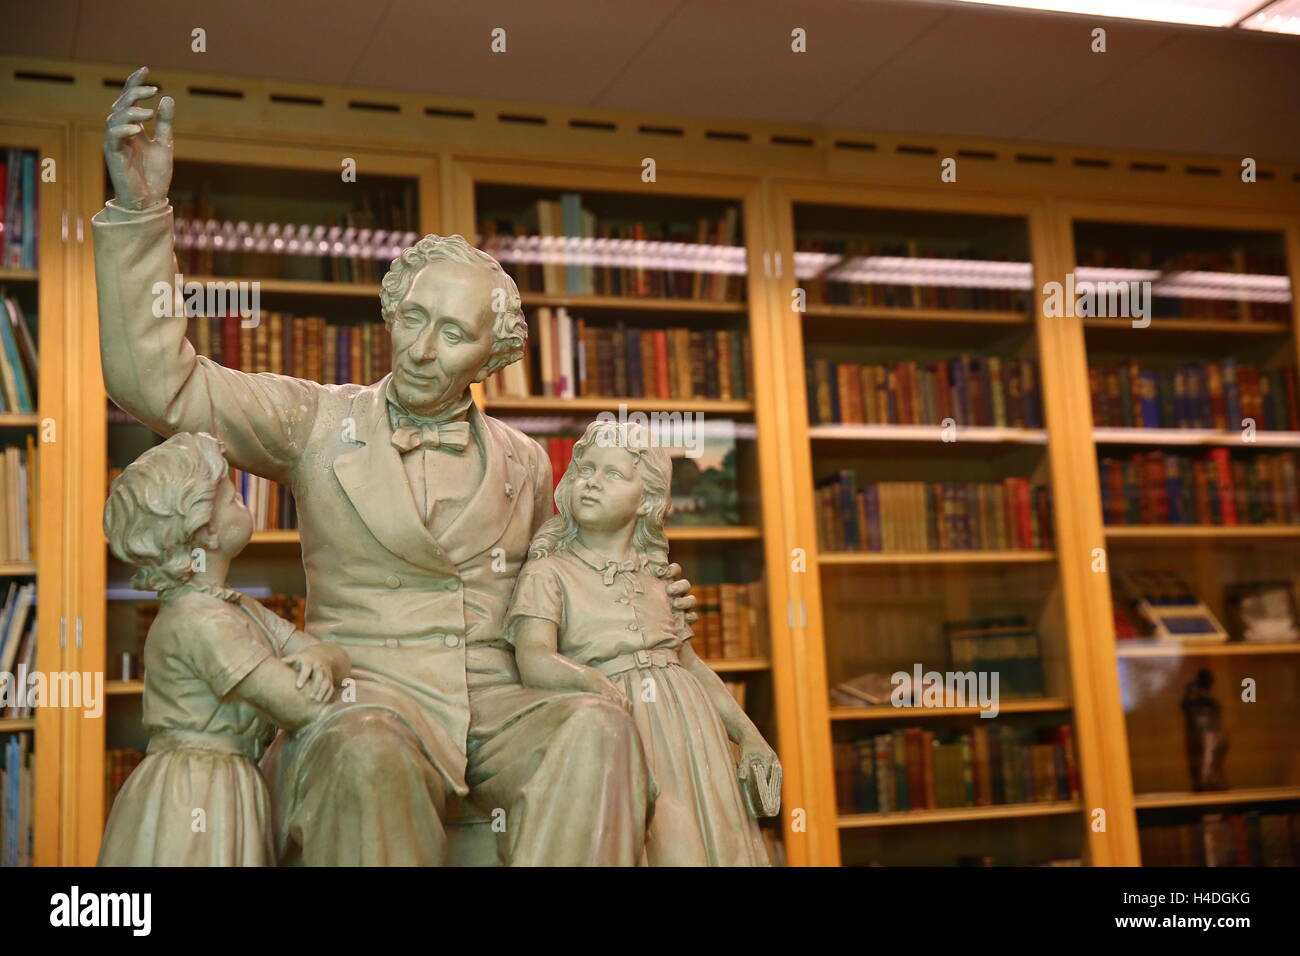 Hans Christian Anderson Statue - Stock Image